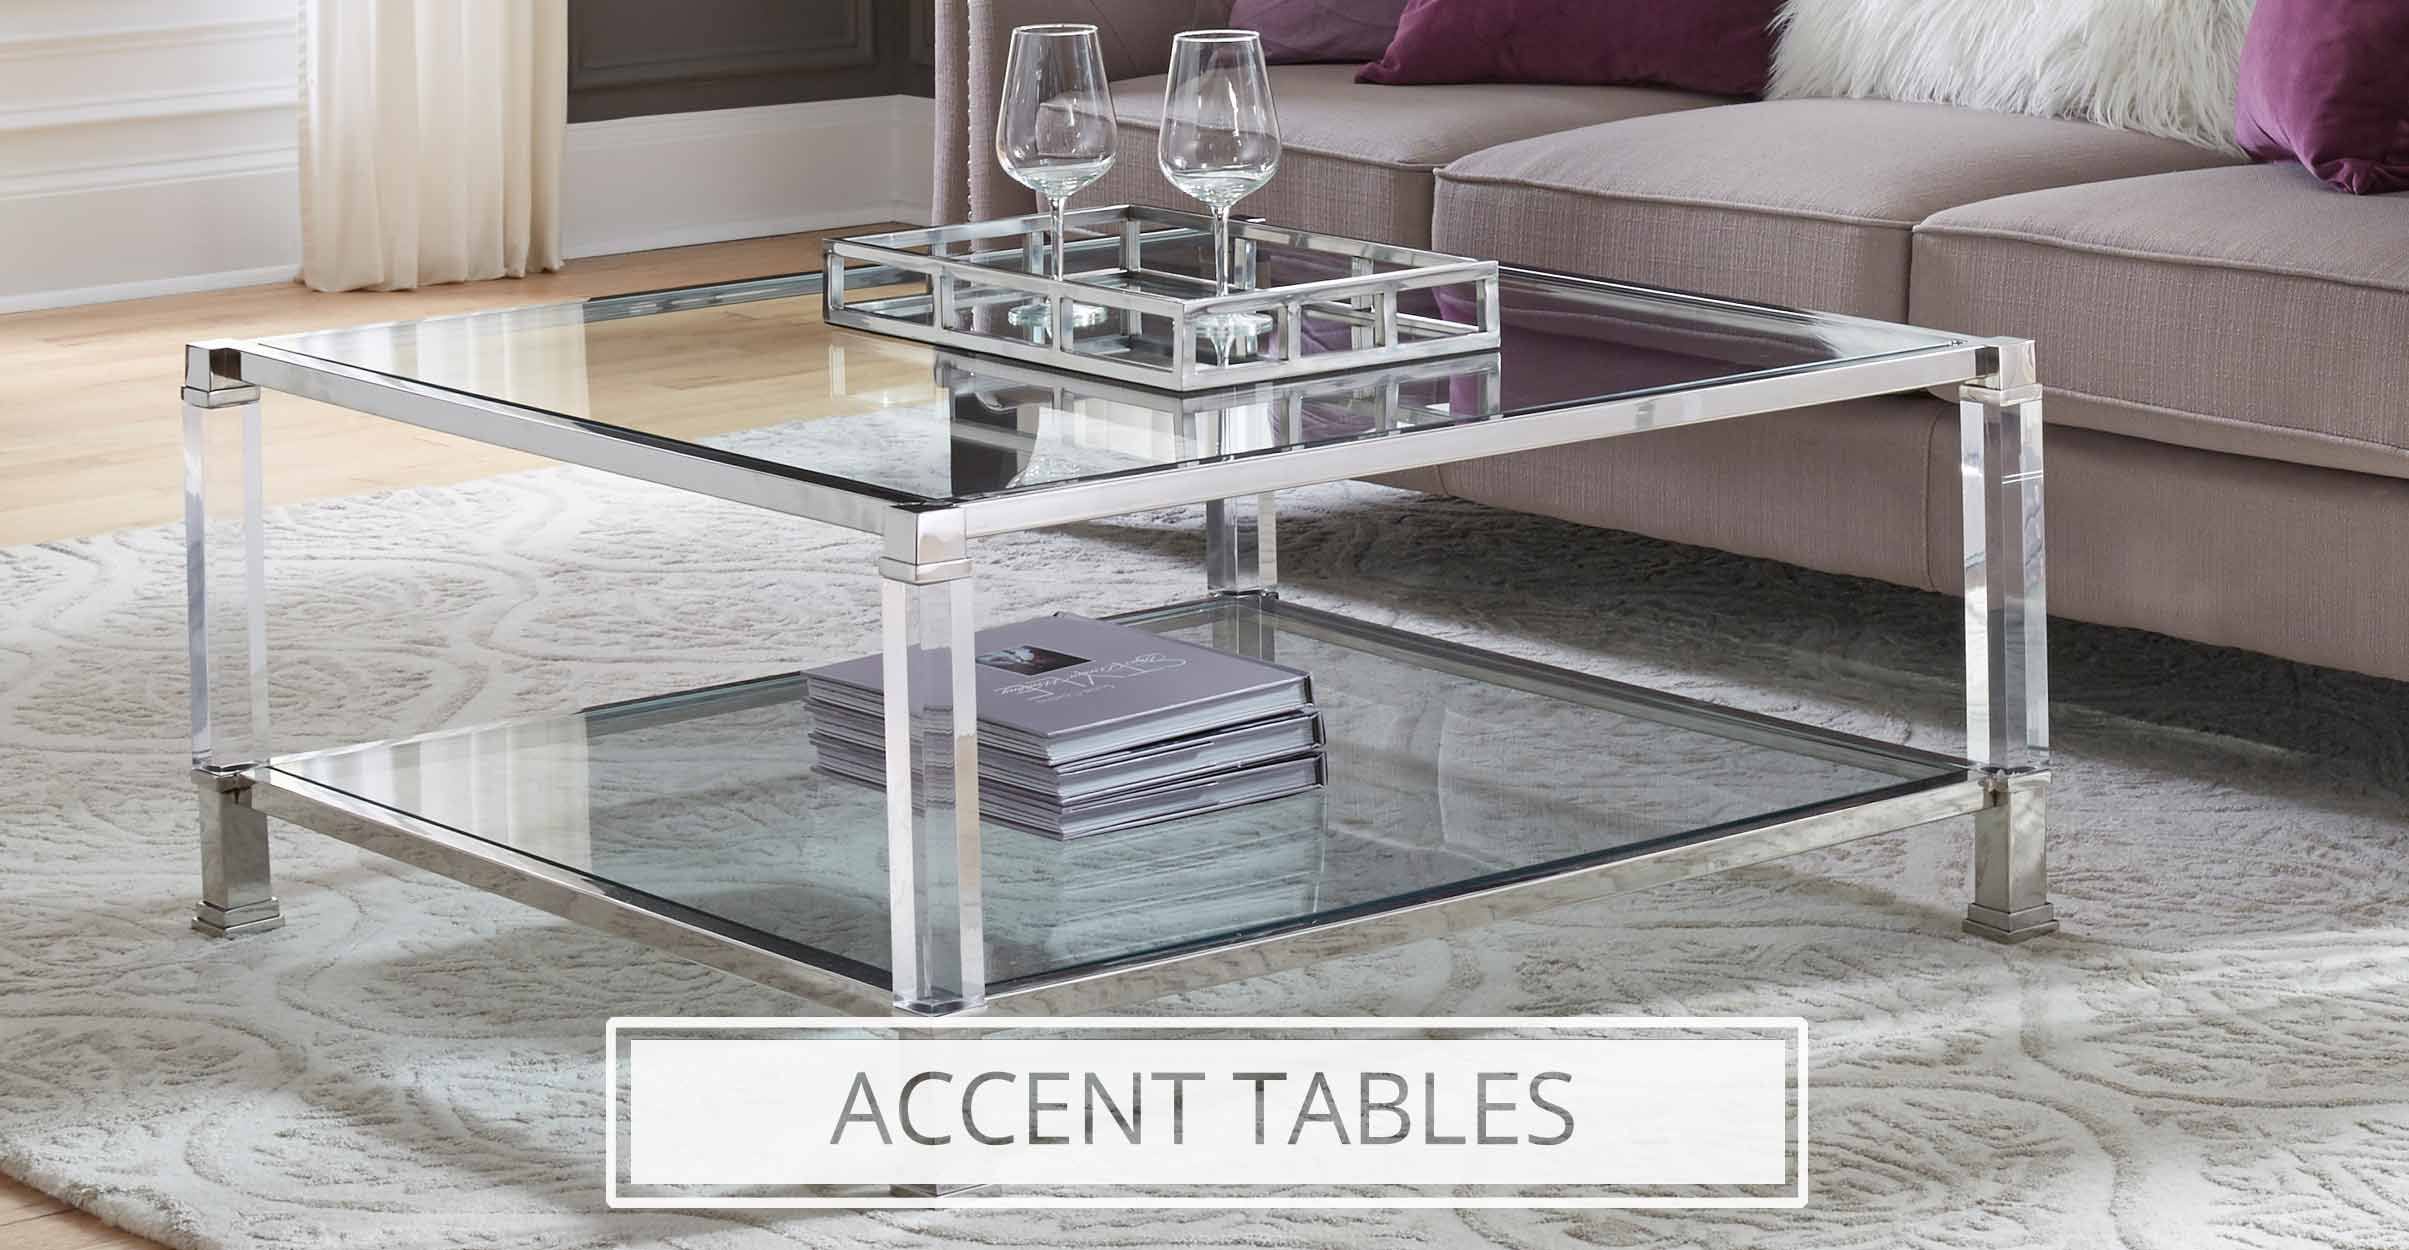 room tables lighting centerpieces tiffany shades target accent ideas farmh mini for small round threshold plus outdoor and contemporary decor lamps living ott top lamp table